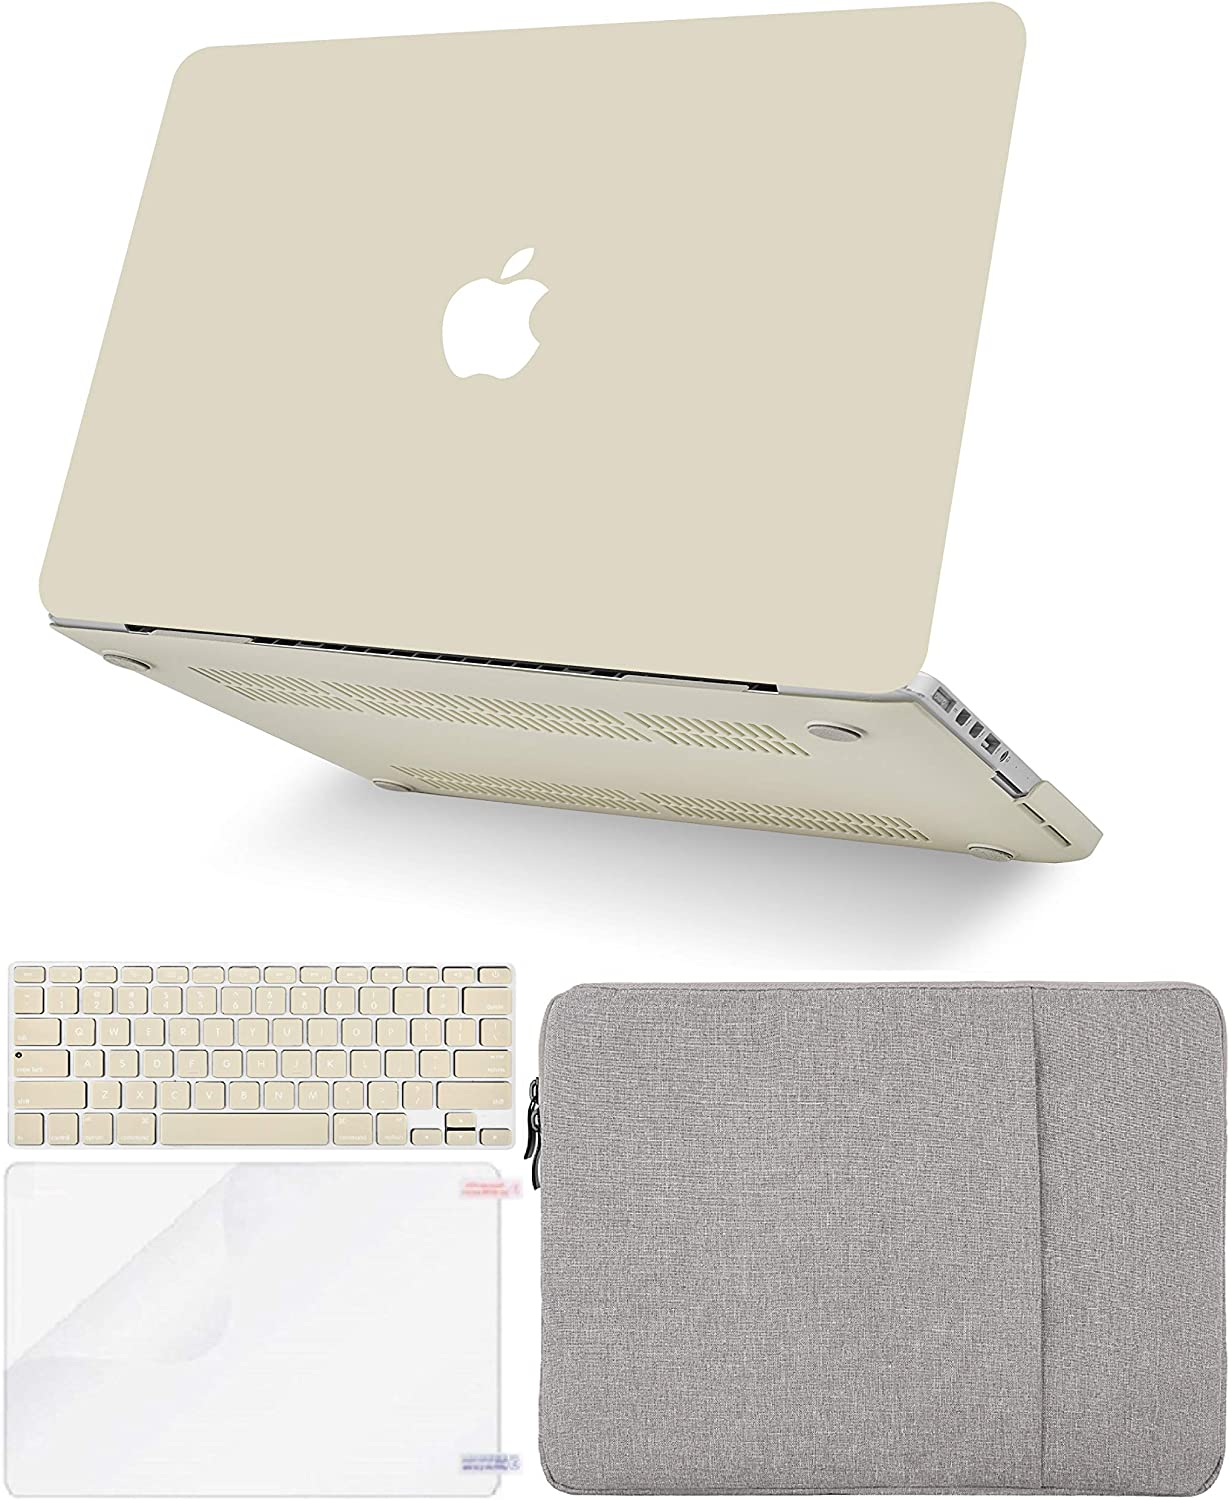 """KECC Laptop Case for MacBook Pro 13"""" (2020/2019/2018/2017/2016, Touch Bar) w/Keyboard Cover + Sleeve + Screen Protector (4 in 1 Bundle) Hard Shell A2159/A1989/A1706/A1708 (Cream)"""